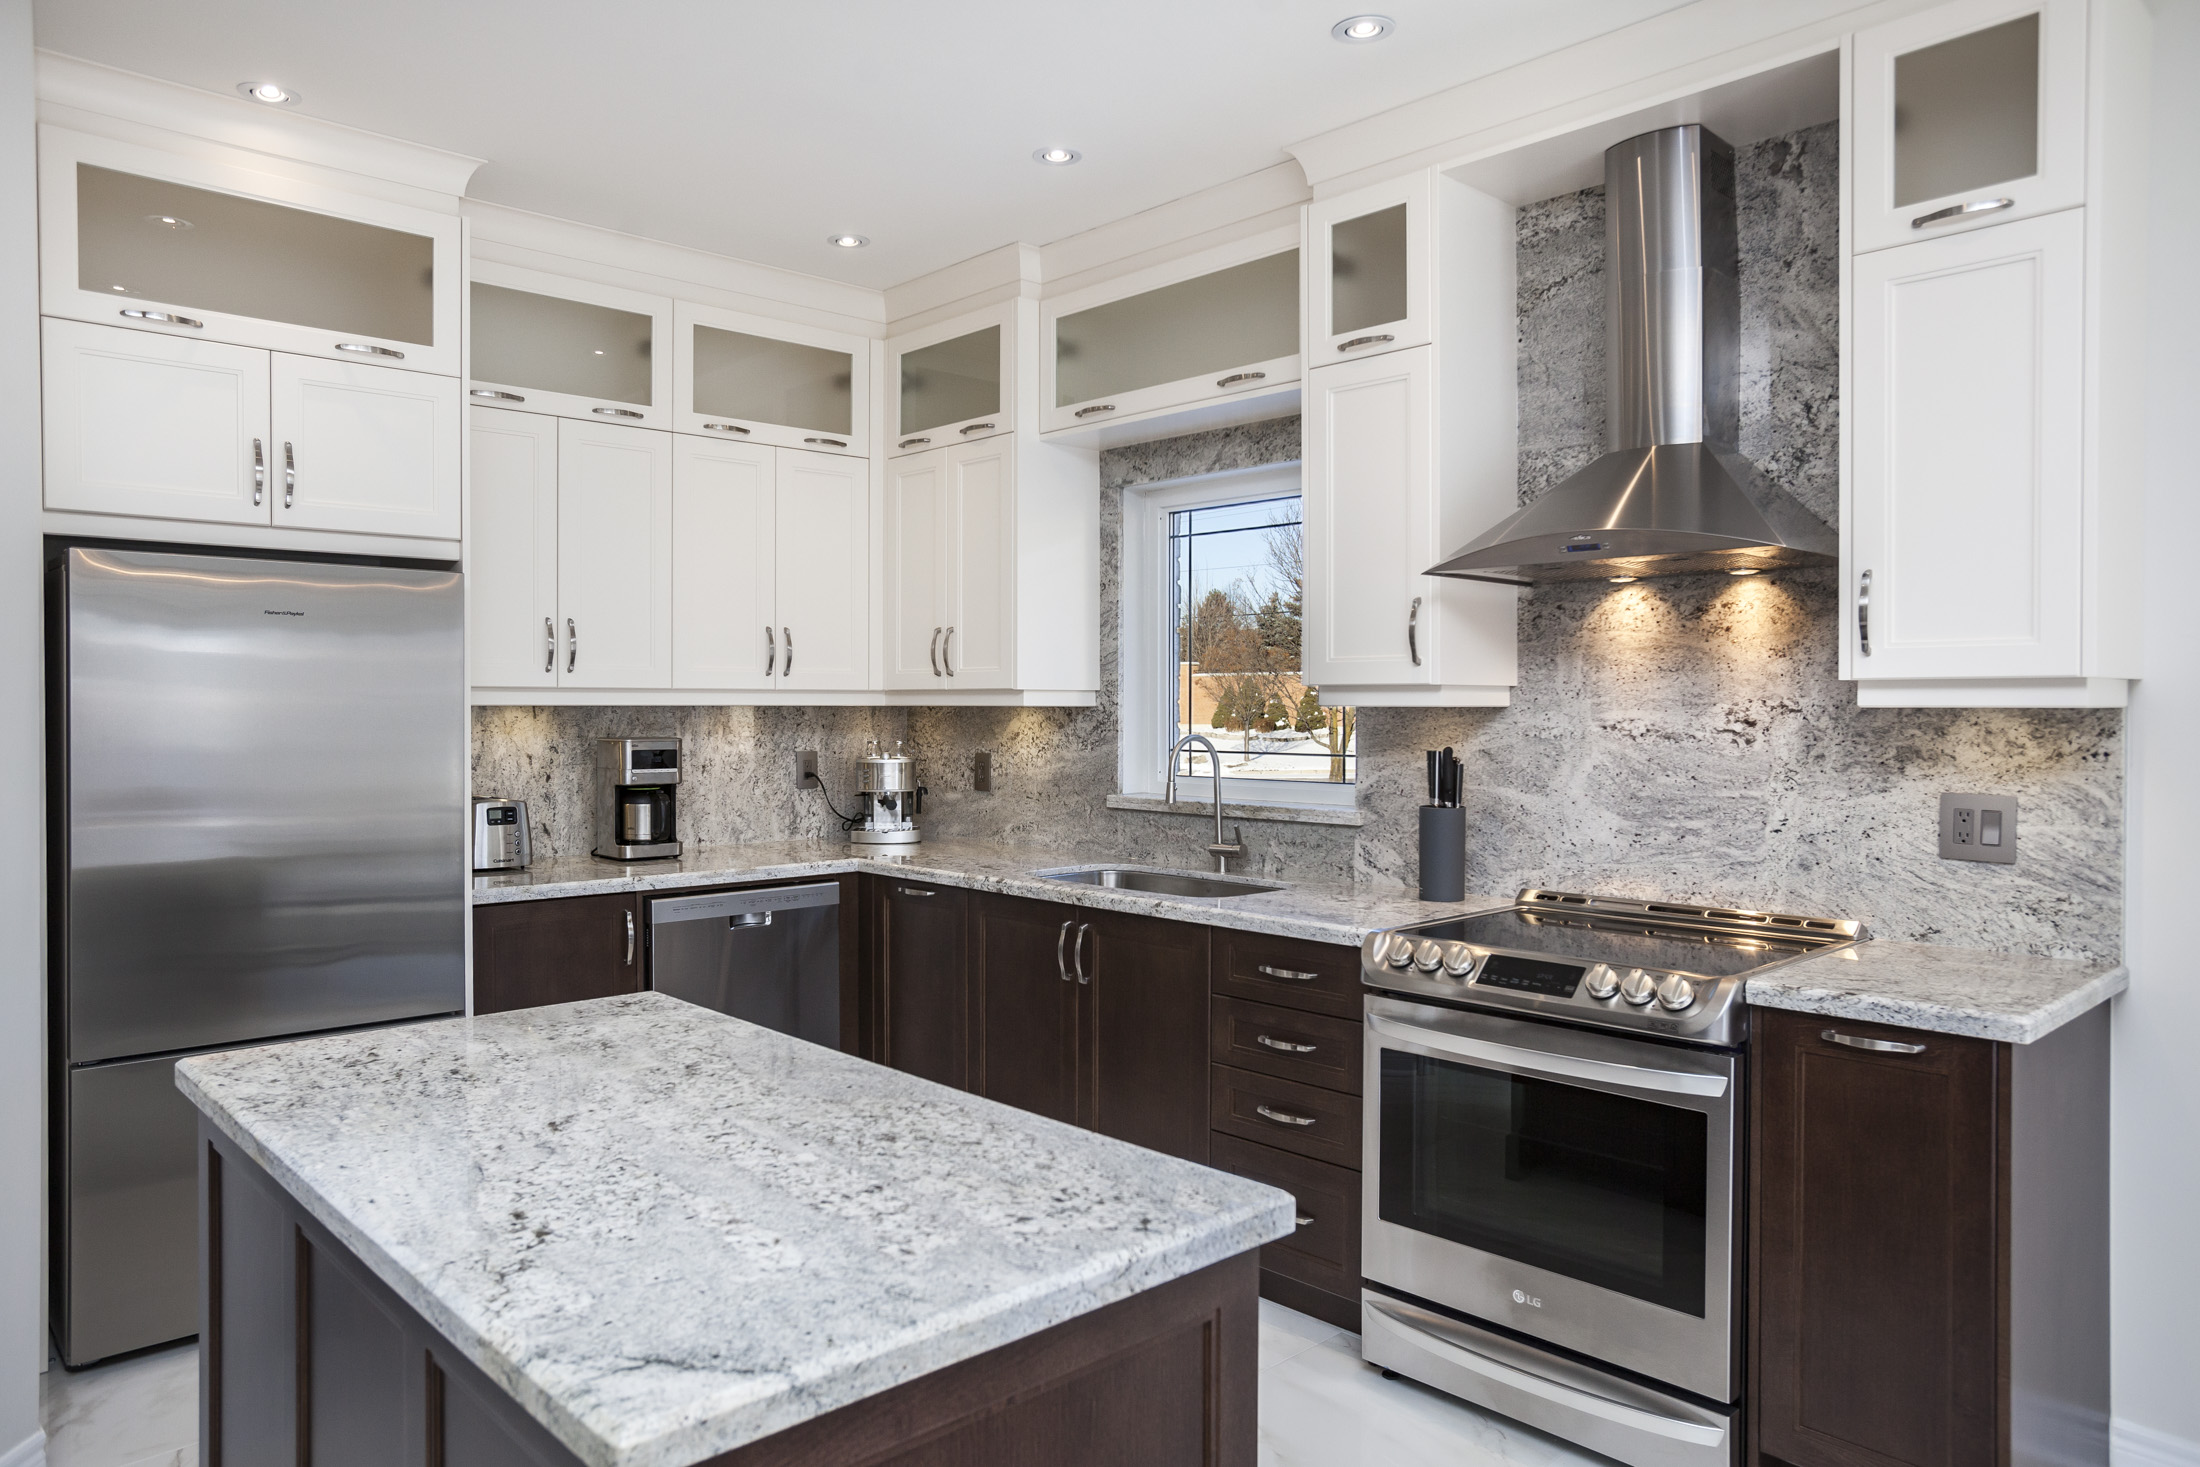 Newly renovated kitchen photographed for a contractor.